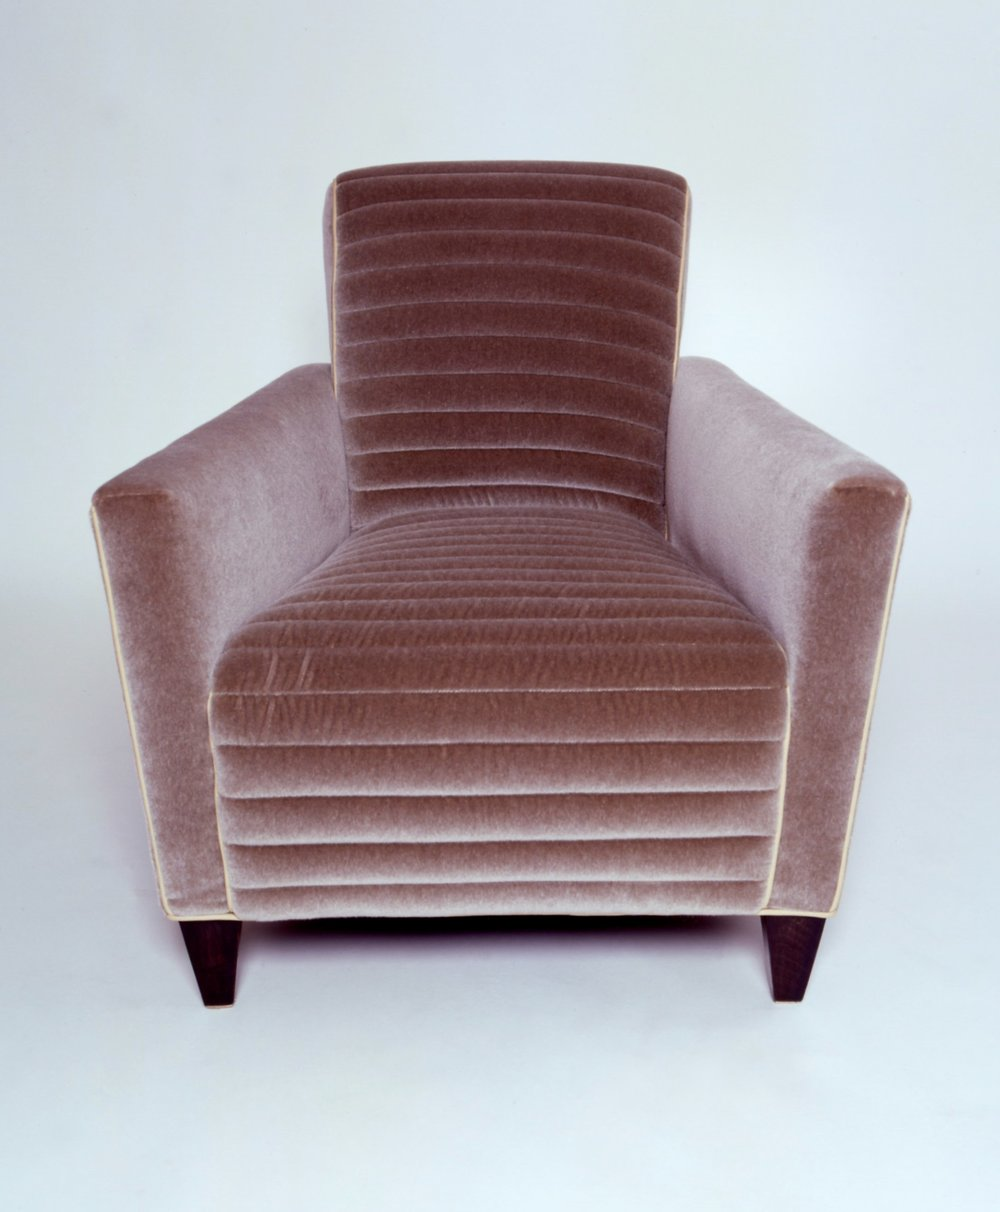 Channel Stitched Contemporary Mohair Chair